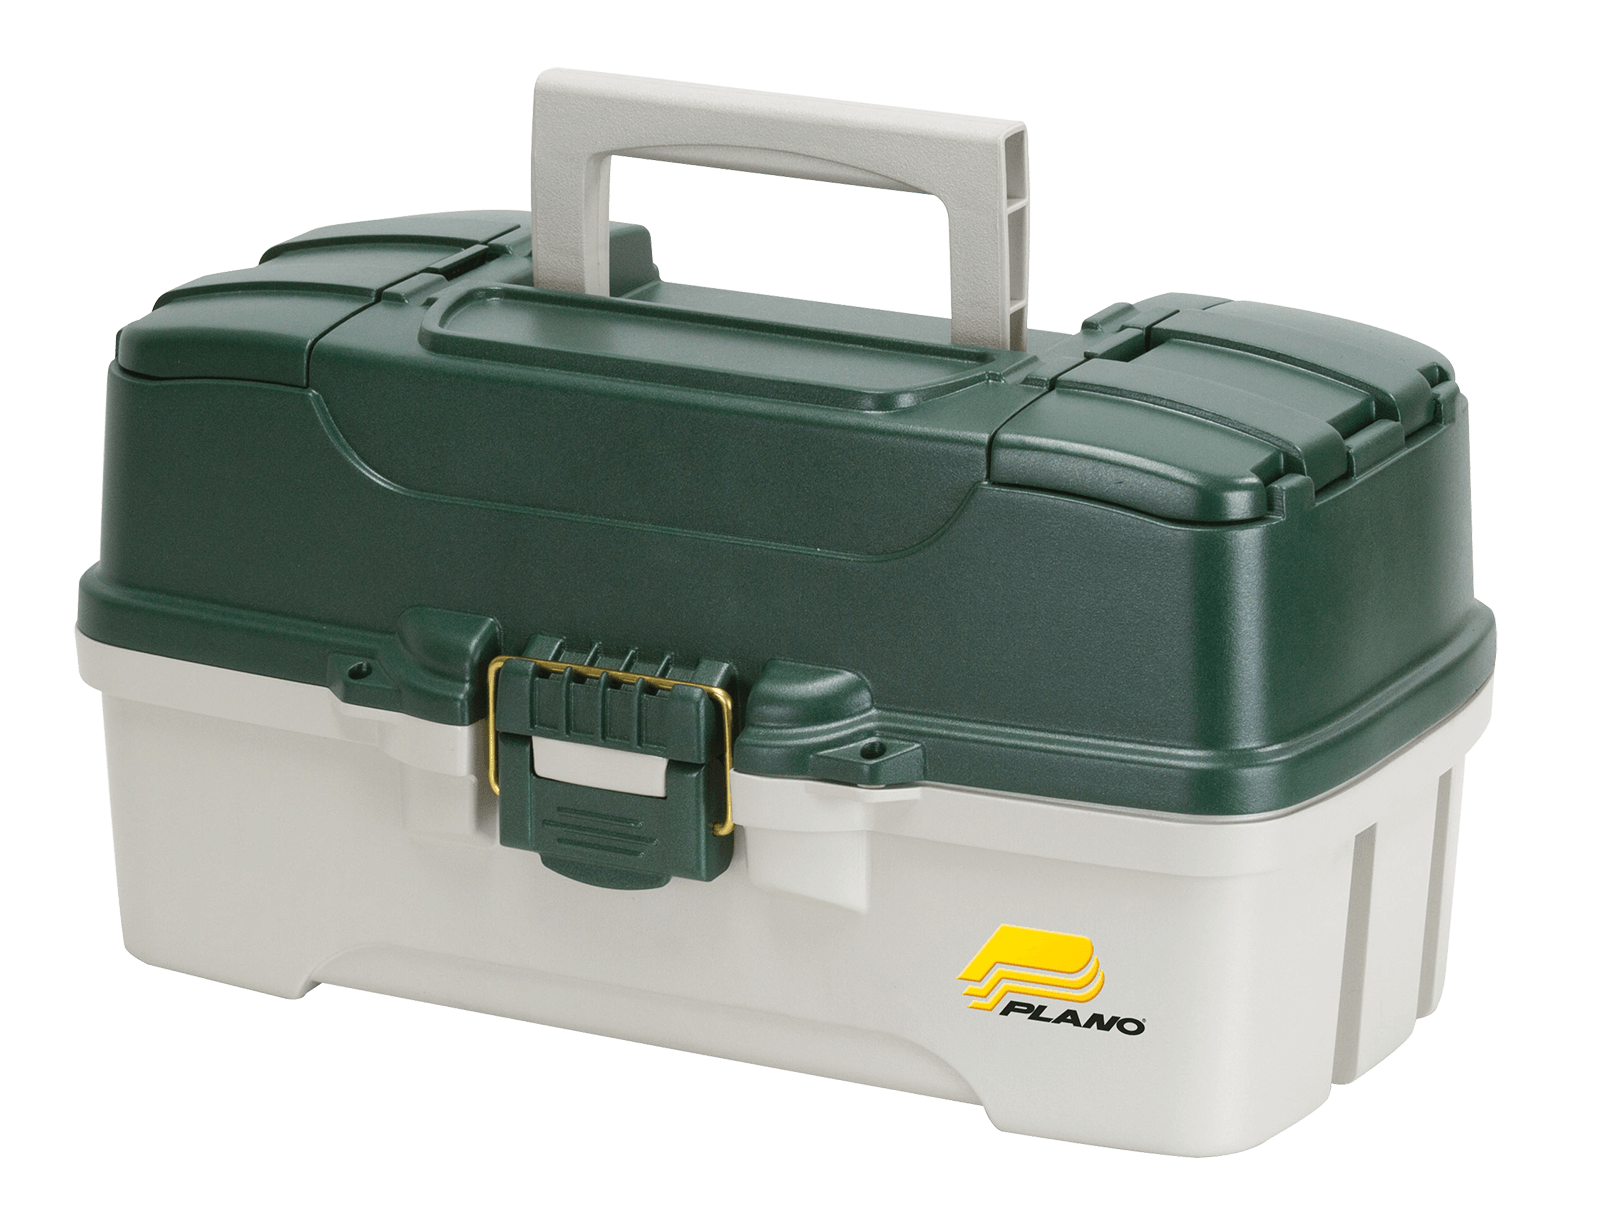 Plano Fishing, 3 Tray Tackle Box, Dual top access, Green/Off White